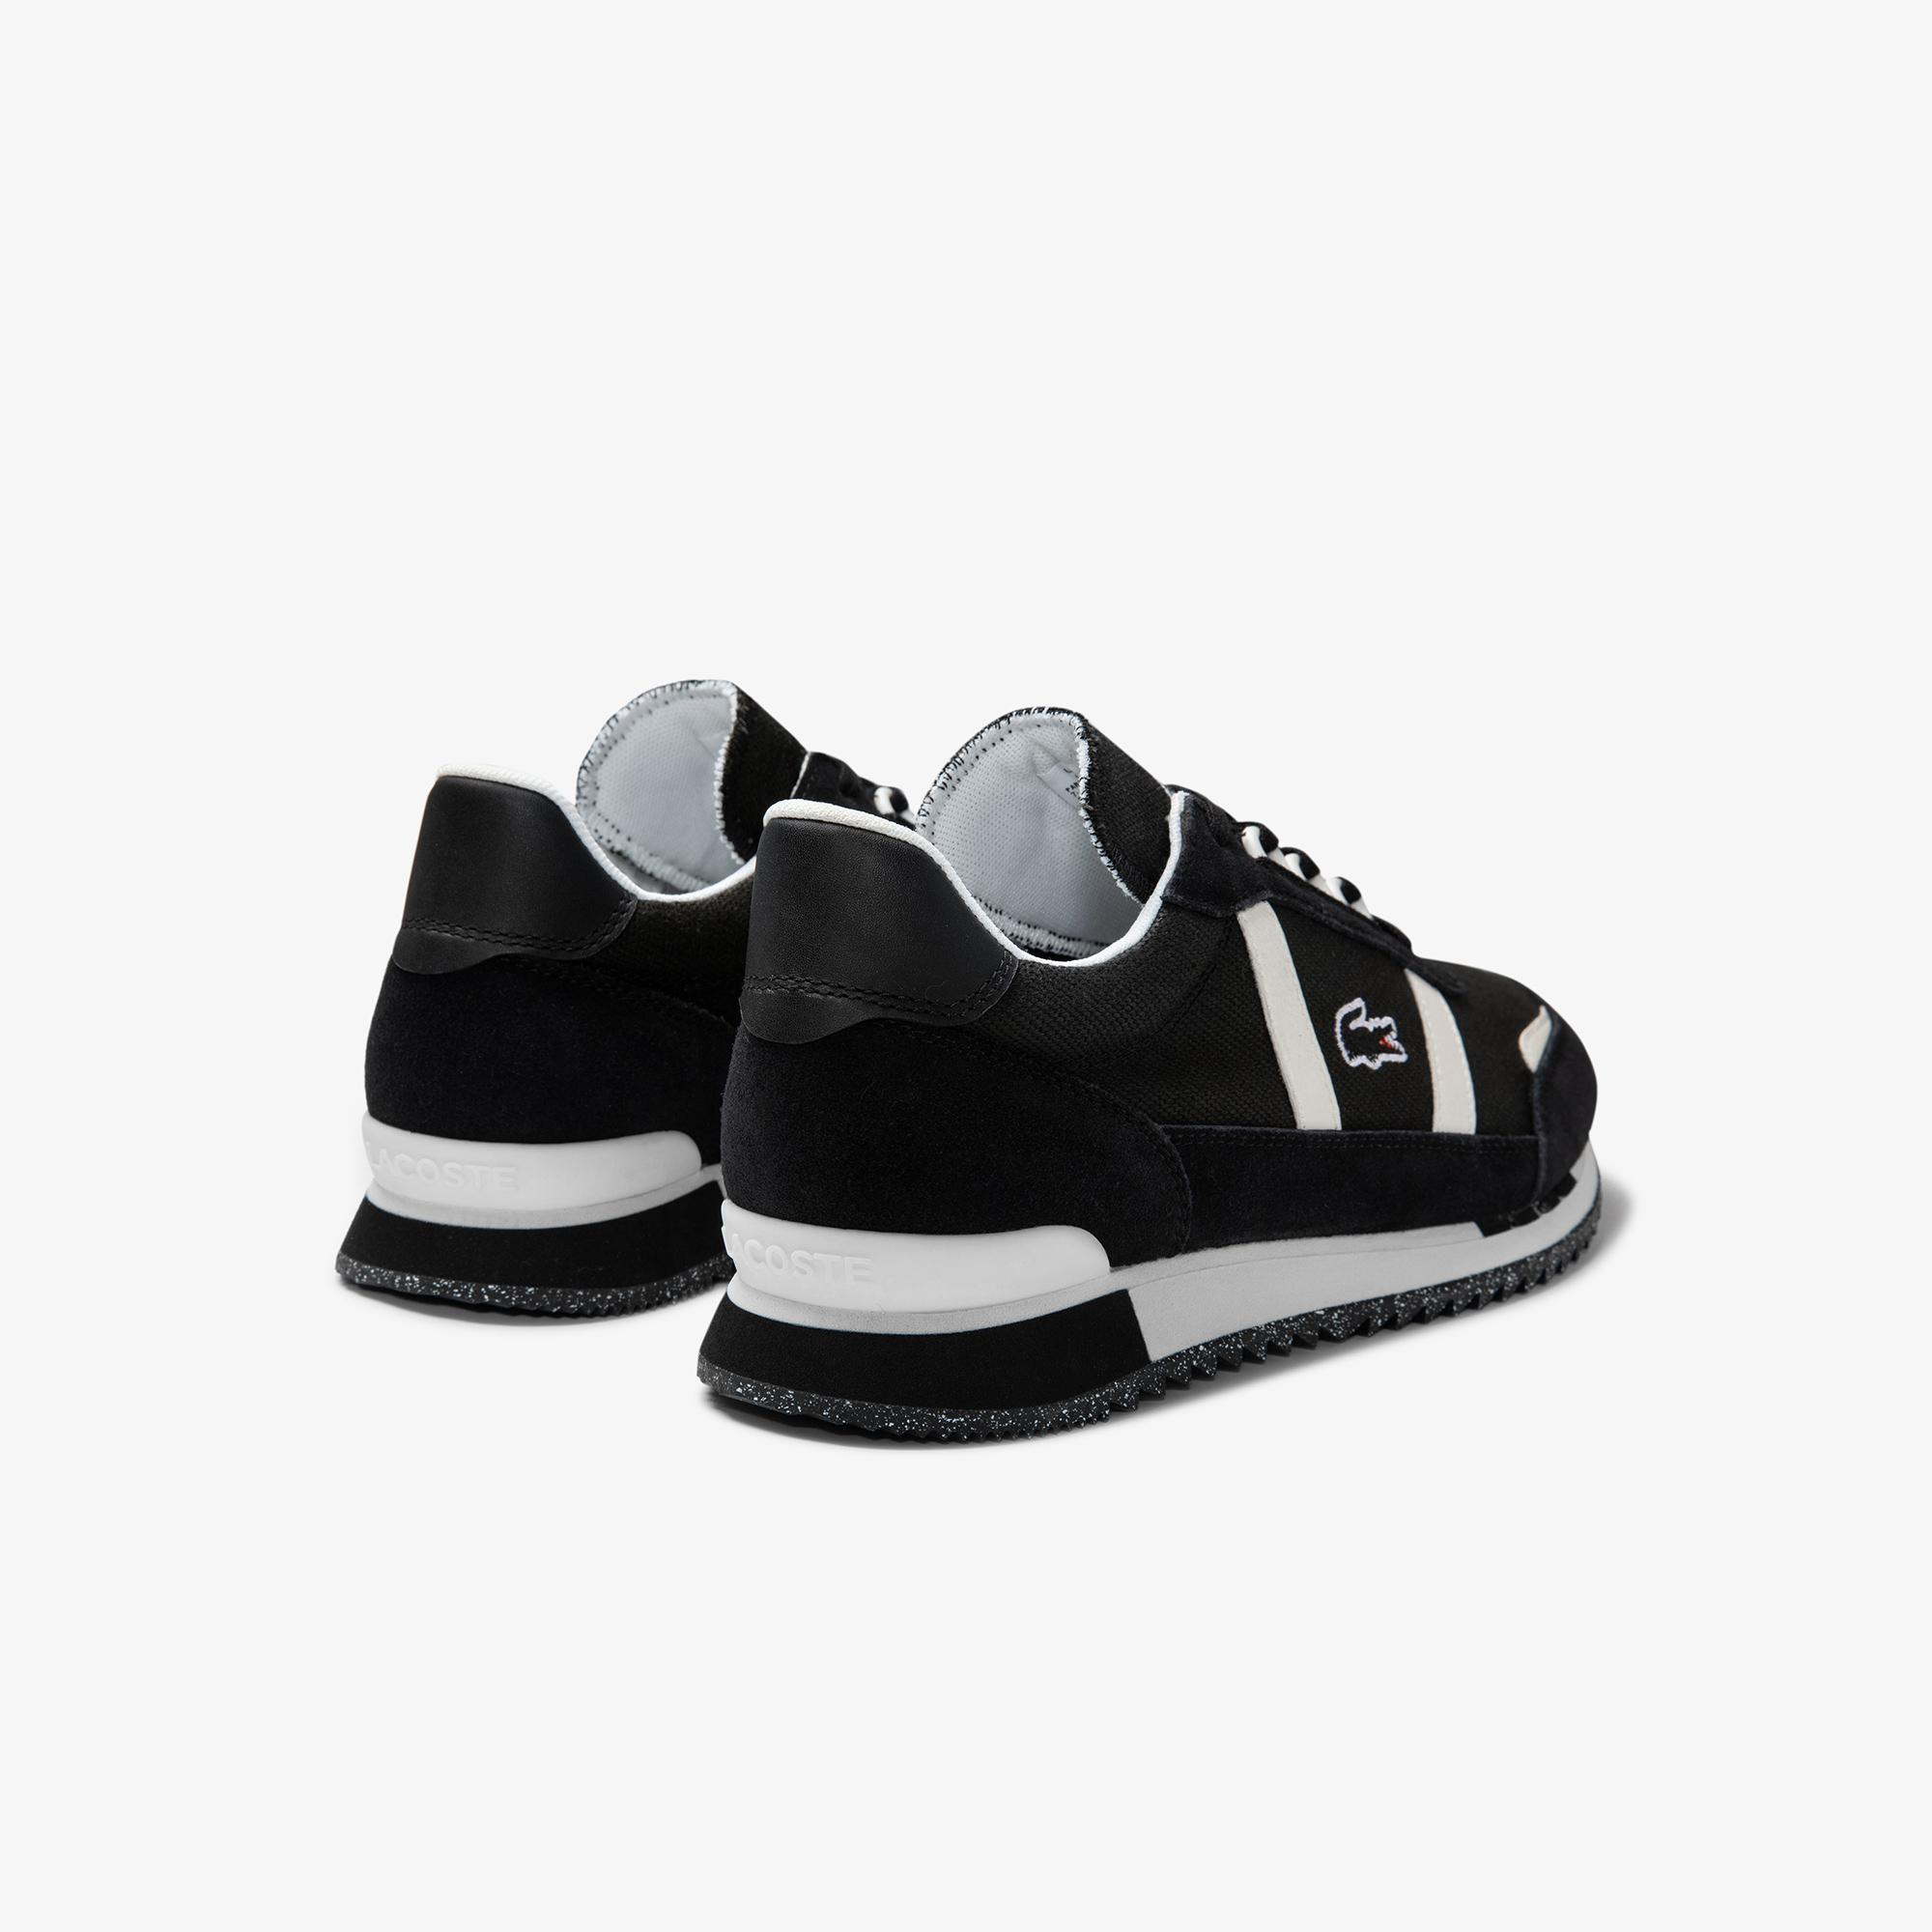 Lacoste Women's Partner Retro Canvas and Suede Sneakers